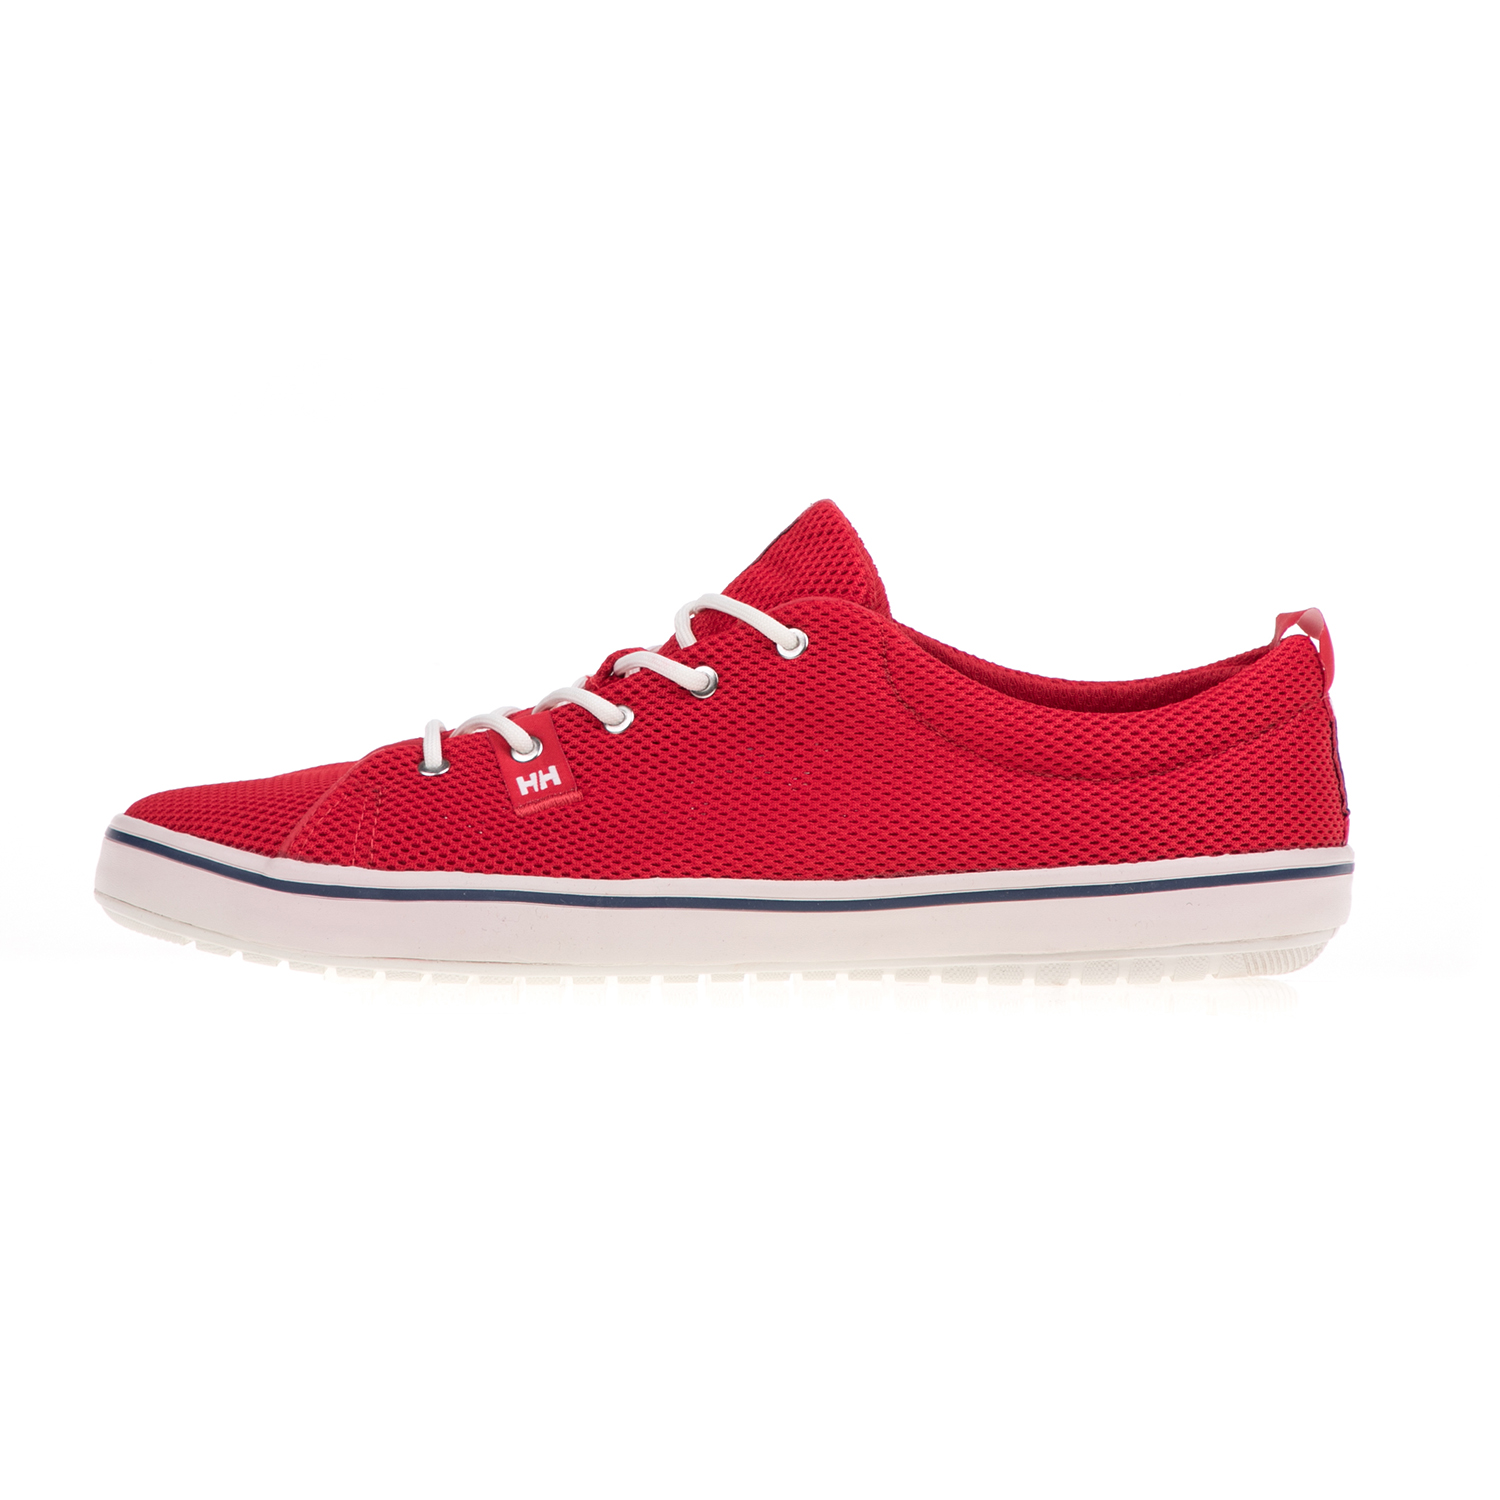 HELLY HANSEN – Ανδρικά sneakers SCURRY 2 κόκκινα